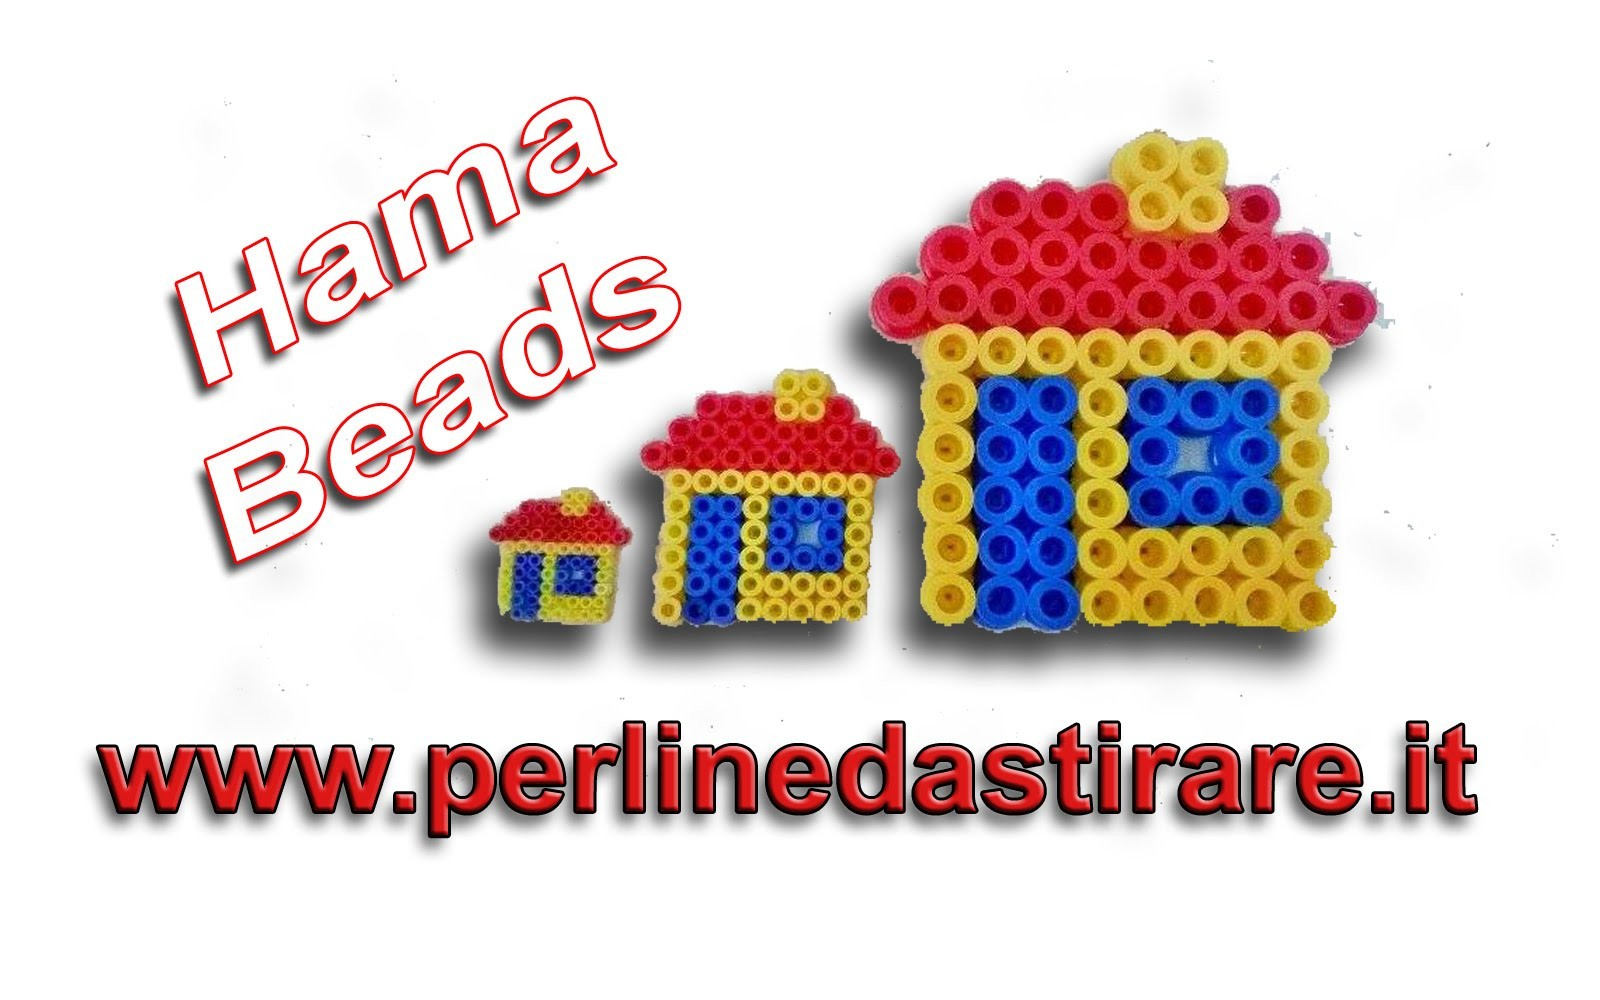 Dove Acquistare le Perline HAMA BEADS? www.perlinedastirare.it